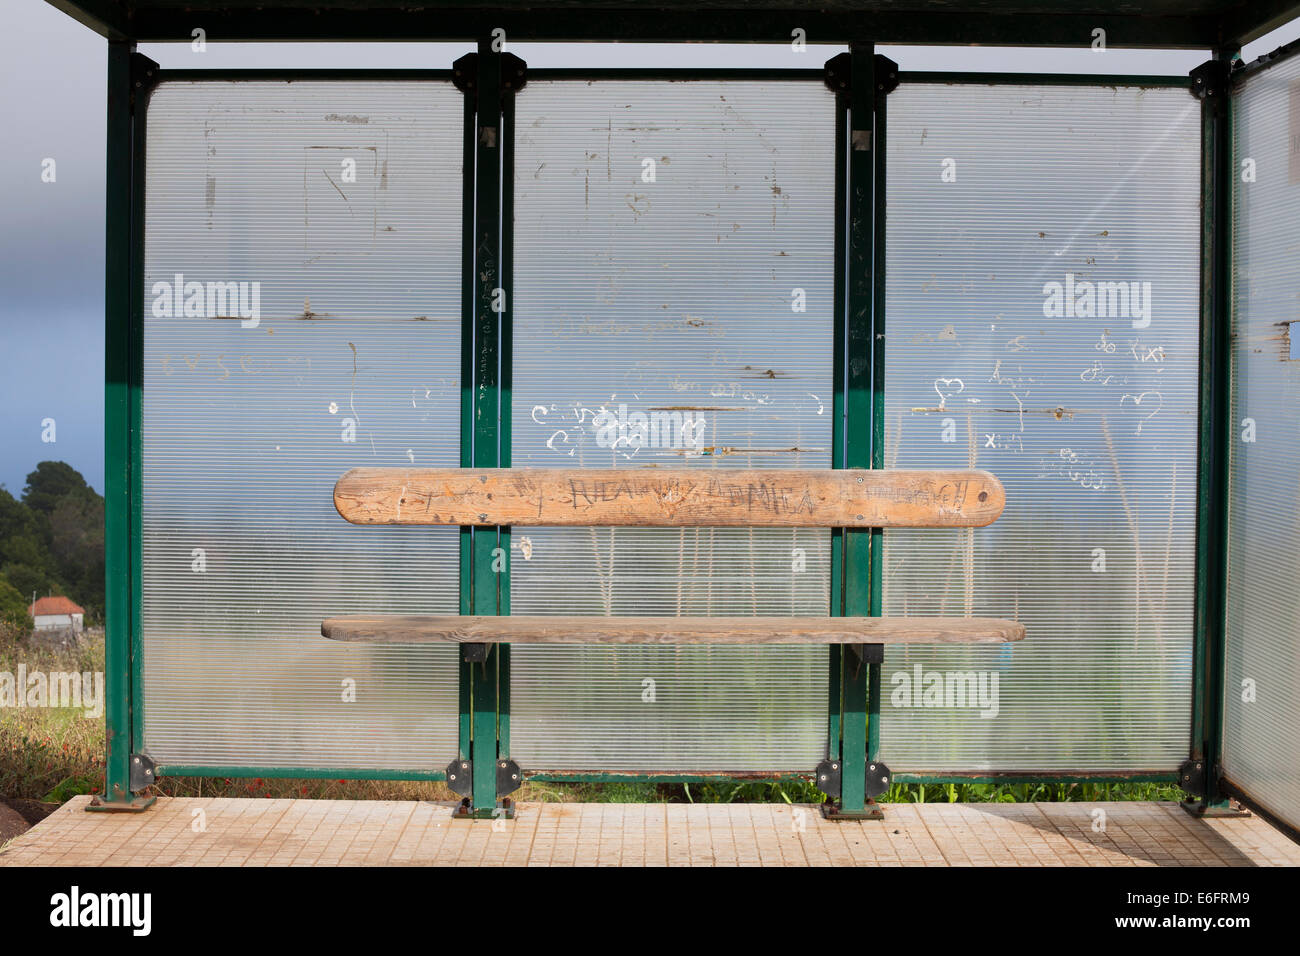 A bus shelter and a wooden bench. - Stock Image